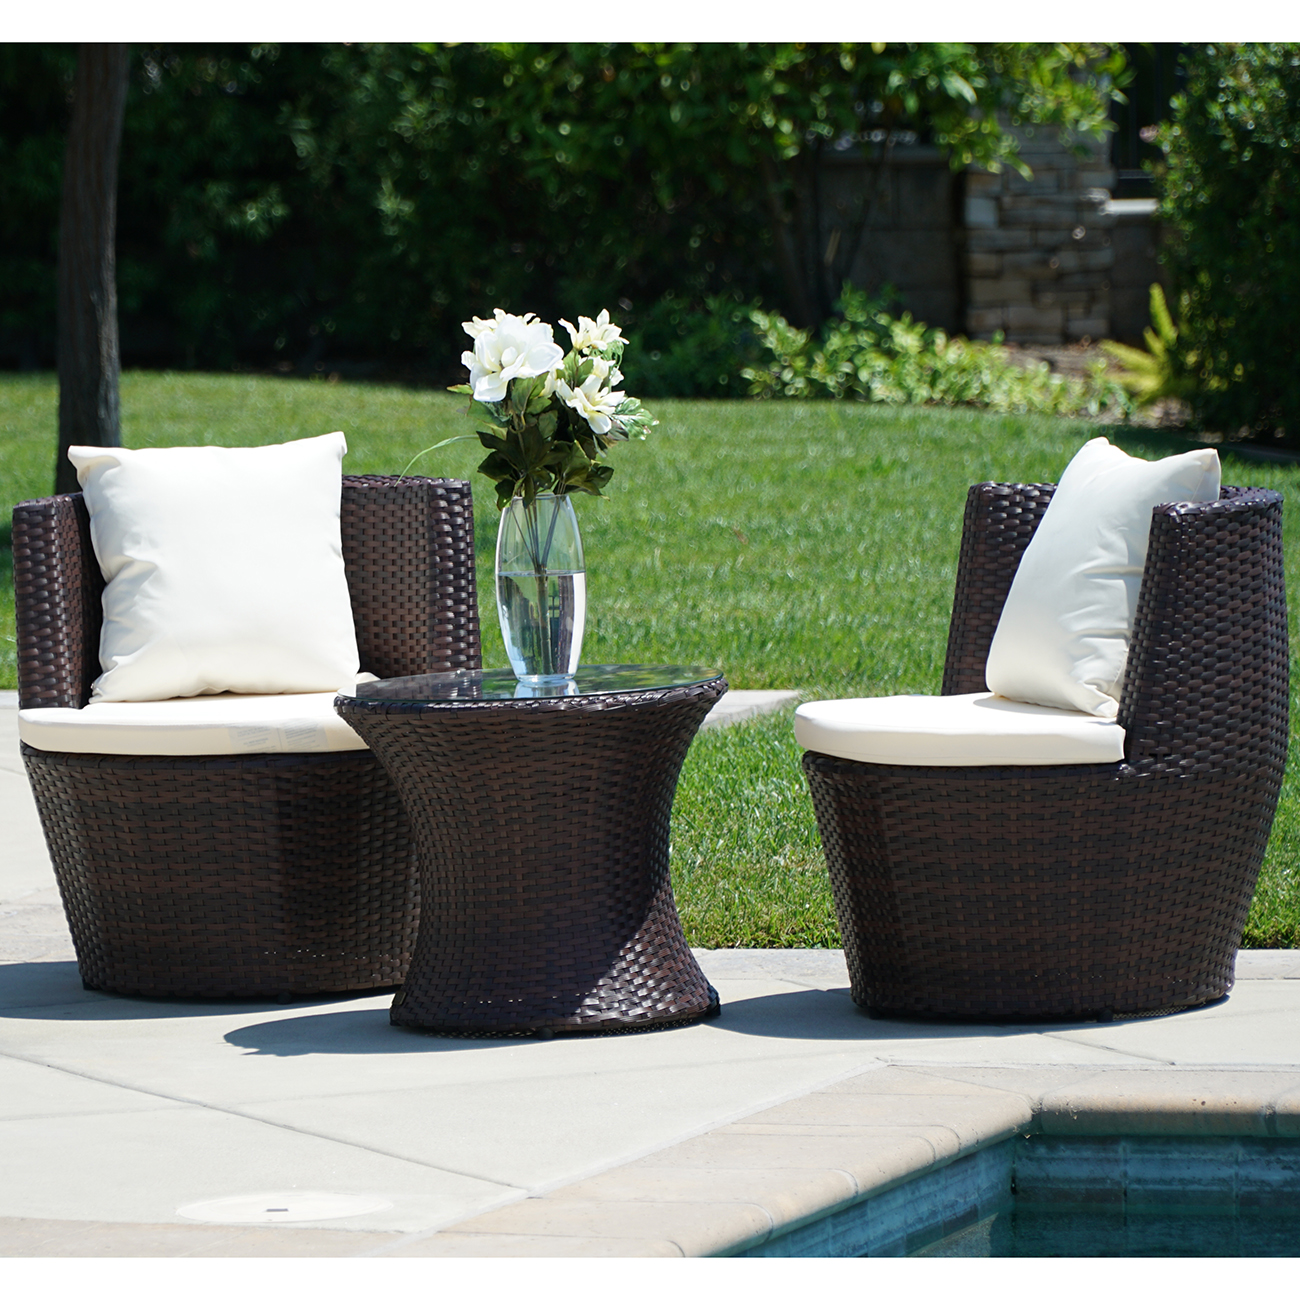 3 Pc Patio Outdoor Rattan Set Wicker Furniture Glass